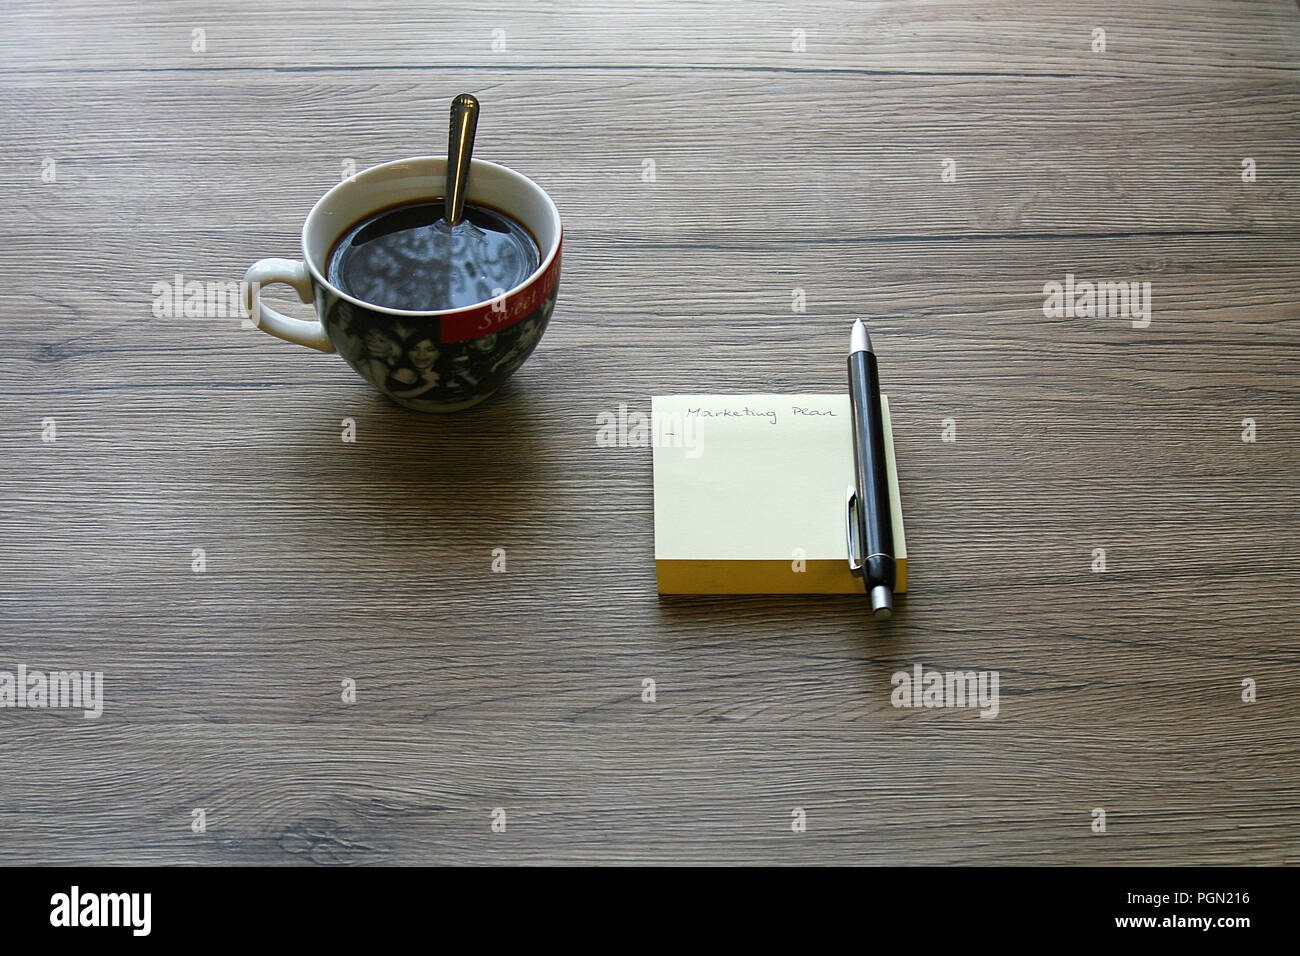 Wooden Office Desk Table With Marketing Plan Text On Notes, Pen And A Cup  Of Coffee